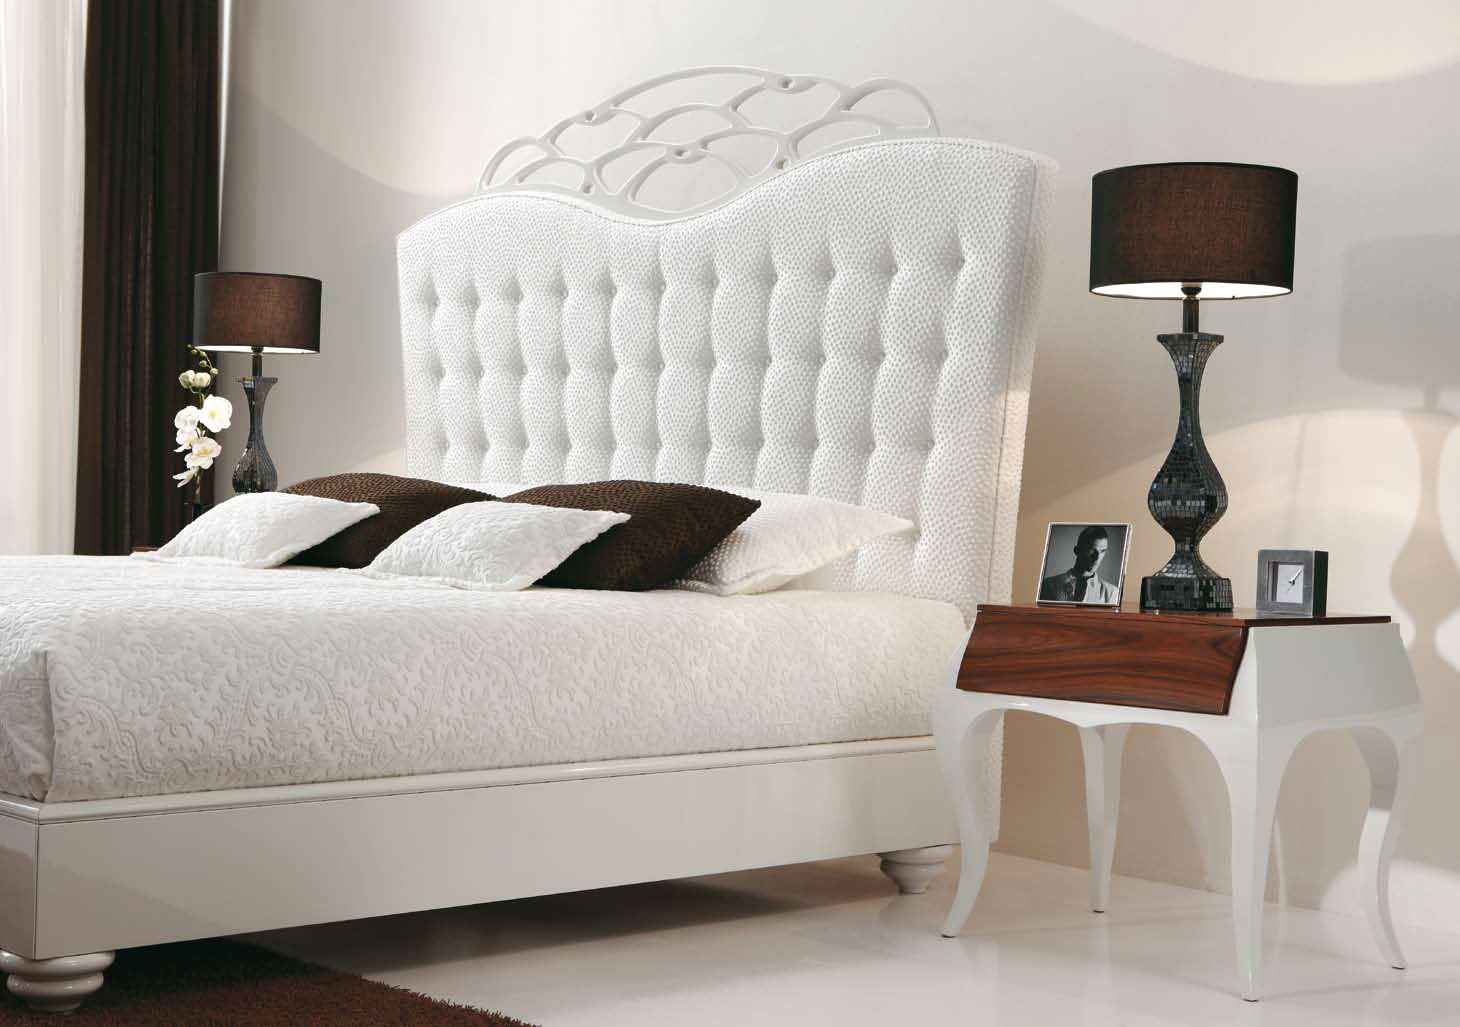 Impressive White Bedrooms with Beds 1460 x 1027 · 118 kB · jpeg